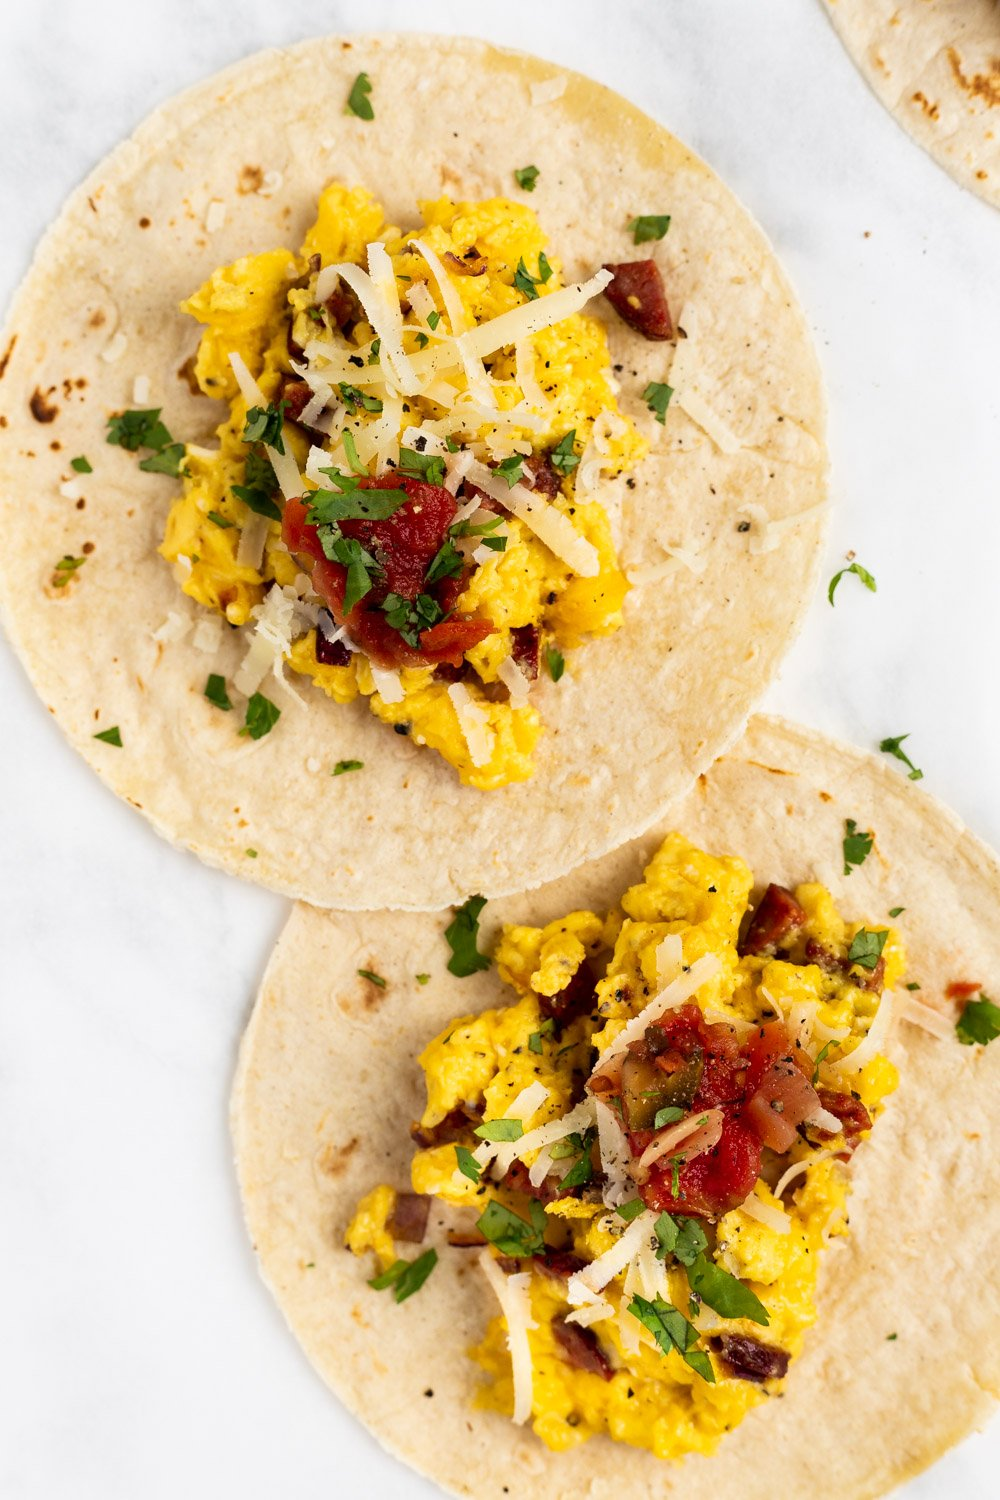 A top down view of two chorizo breakfast tacos on parchment paper.